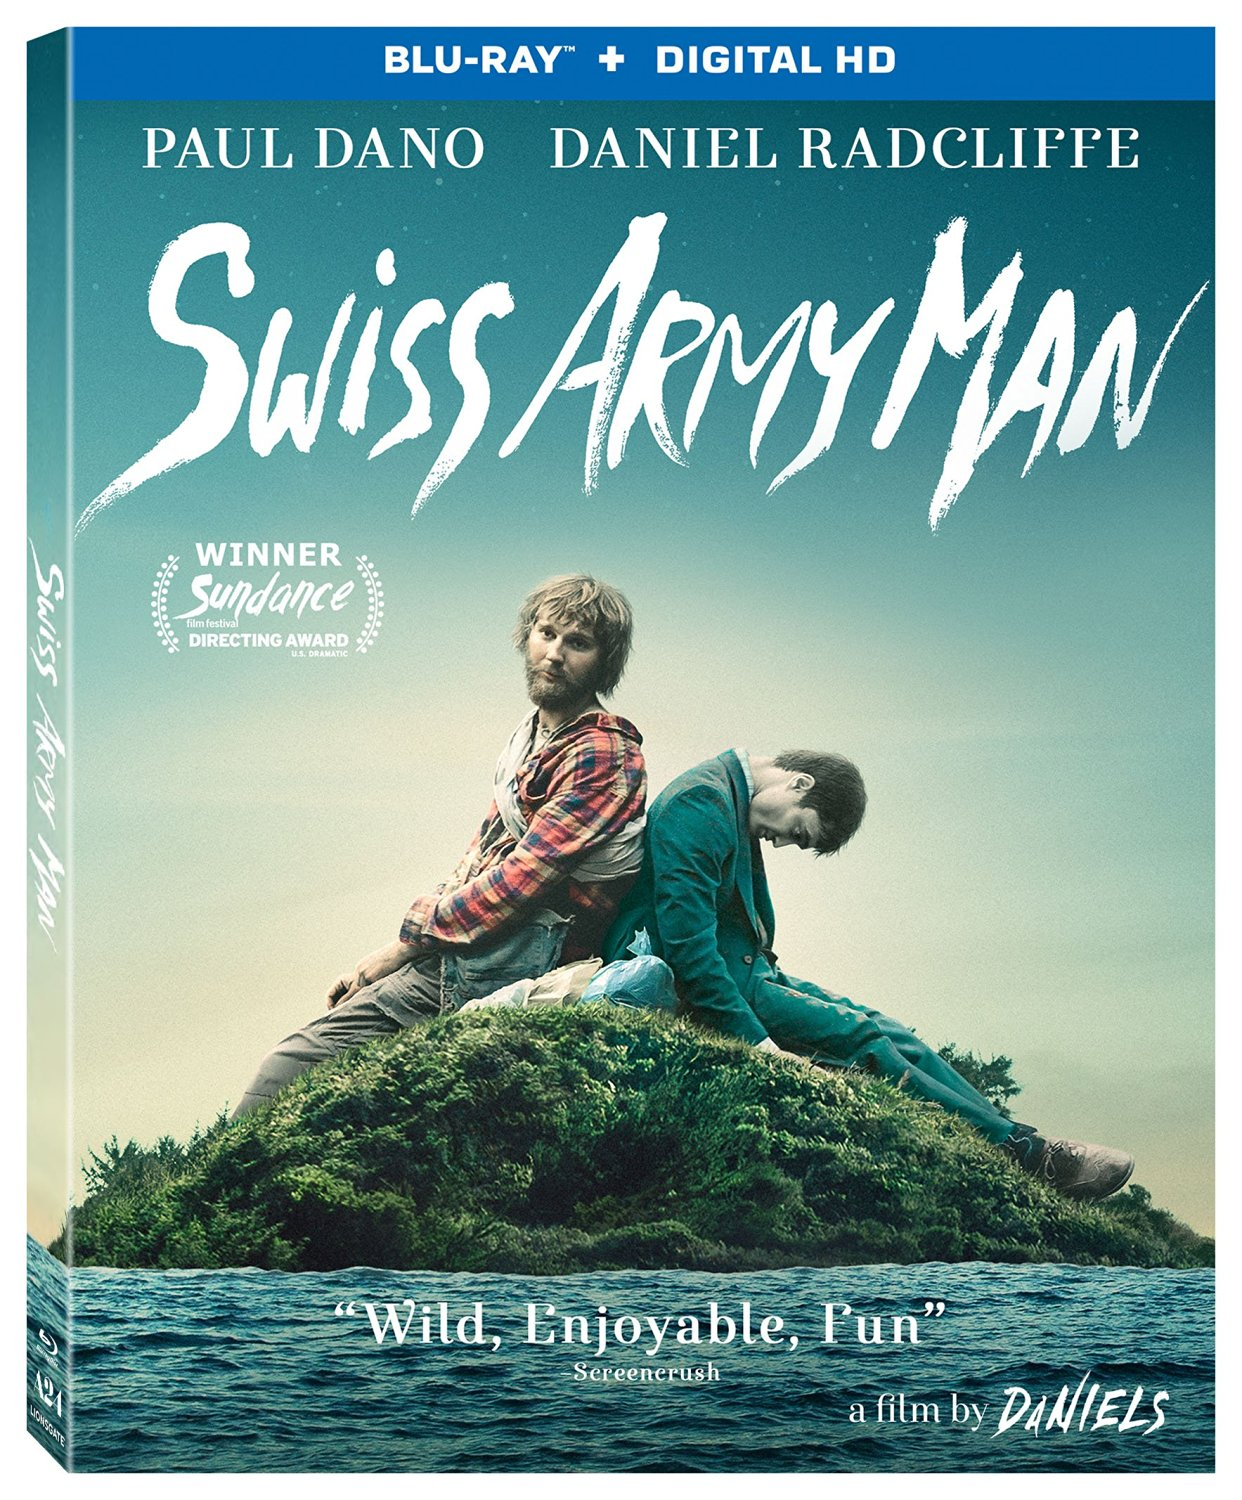 swiss army man - Swiss Army Man Washes Ashore on Blu-ray and DVD